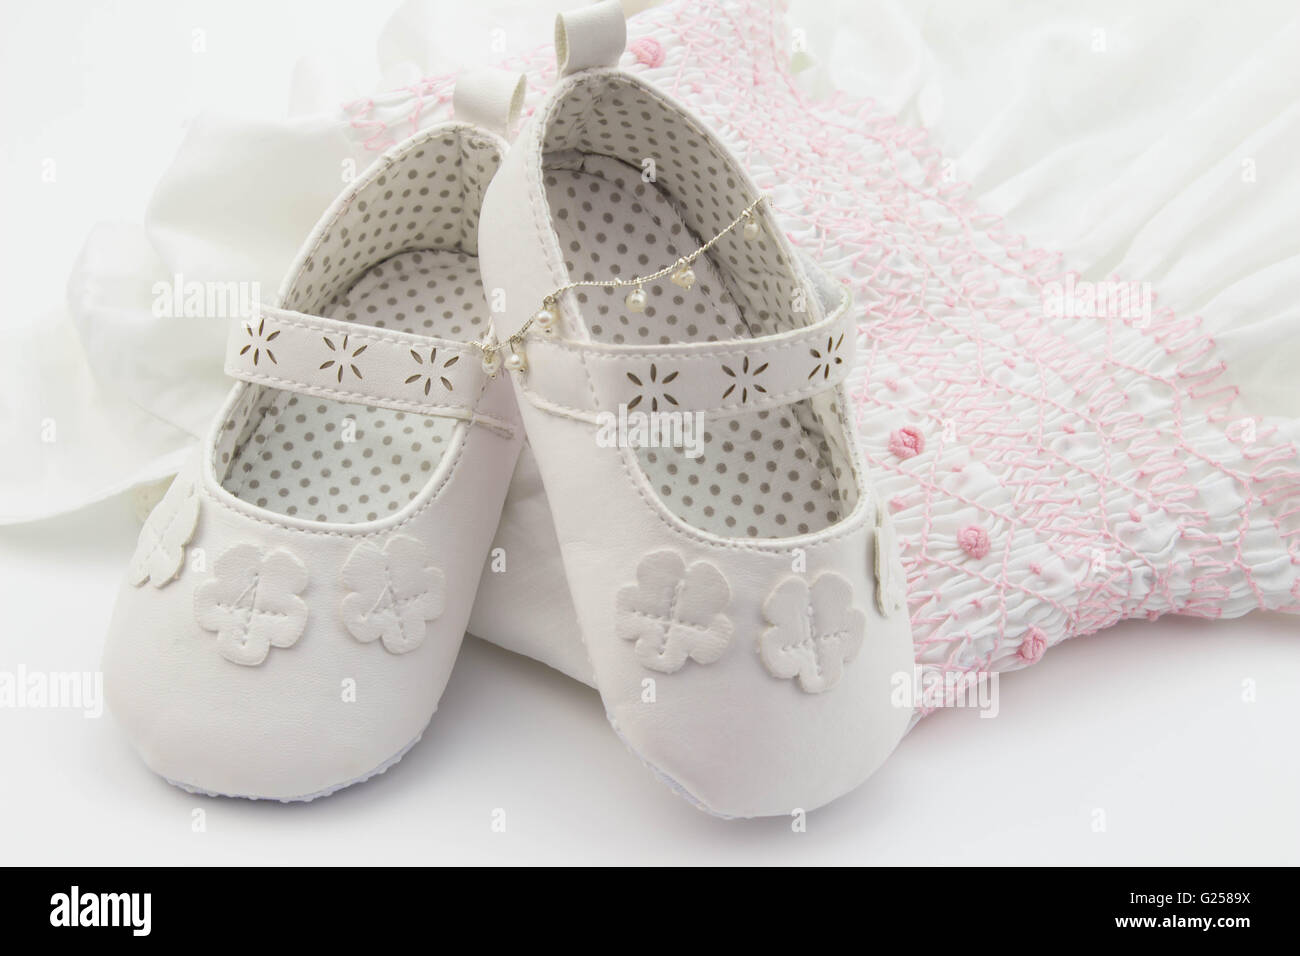 Pair of white baby shoes on embroidered white and pink dress and pearl bracelet - Stock Image